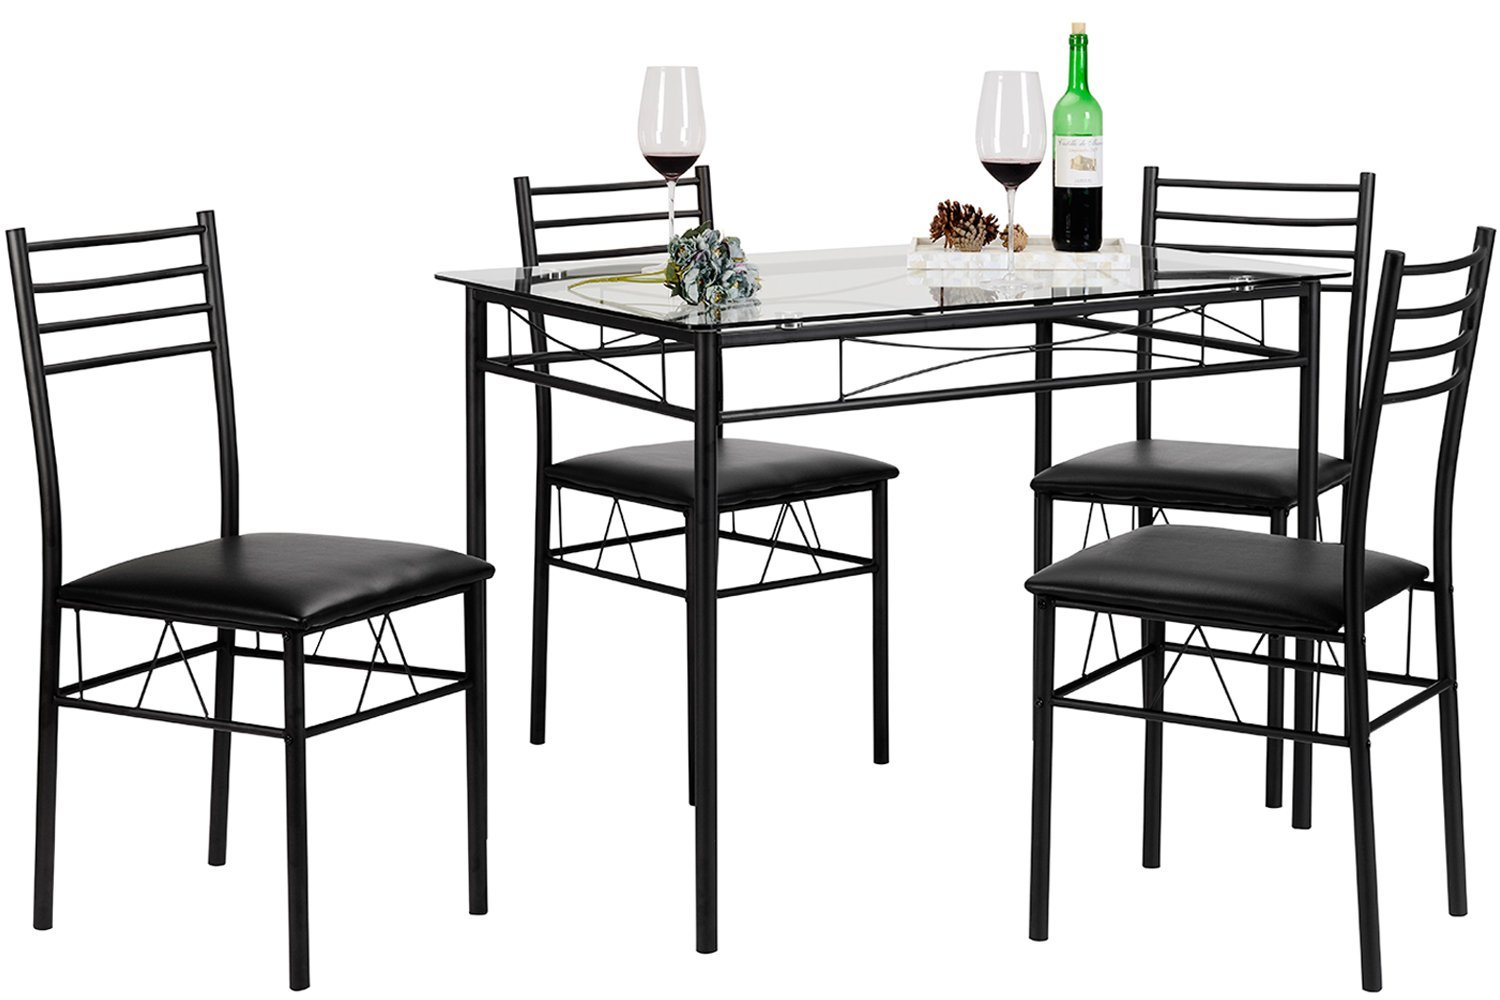 Tiffany Dining Table with 4 Chairs Black – Rochester ...